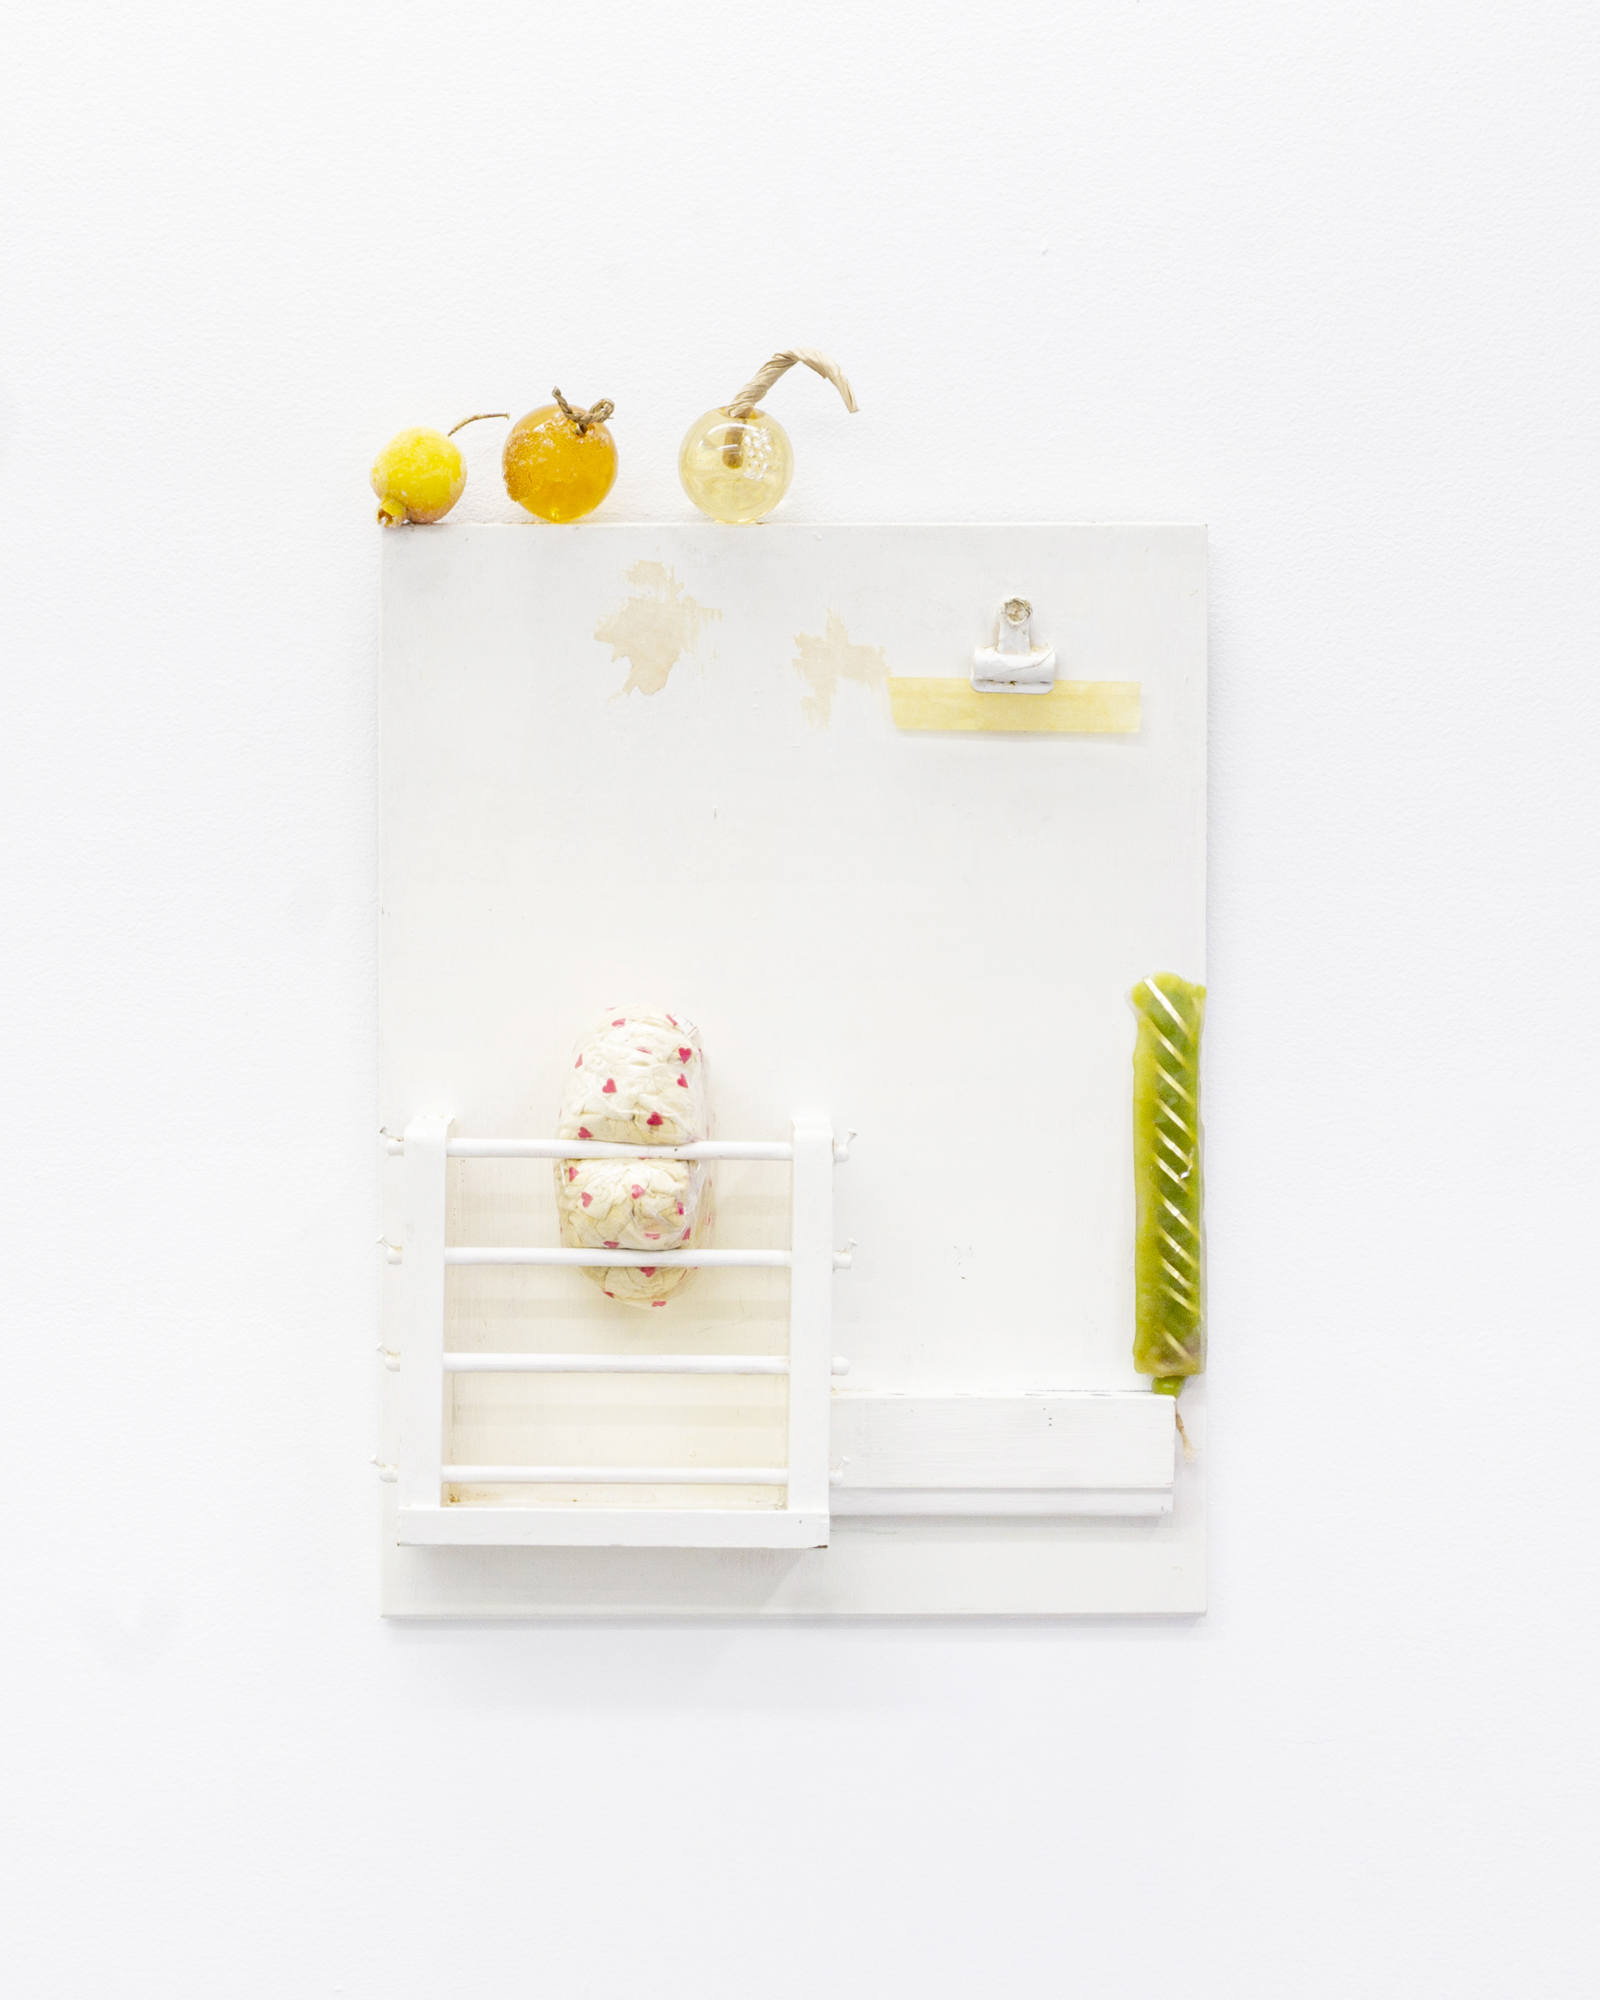 """Nikki Woolsey, """"Closing Store withFruit Remix,"""" 2019, Wood, resin, paint, beads, wicker, suede, plastic bag, price tag, metal, tape, candle"""